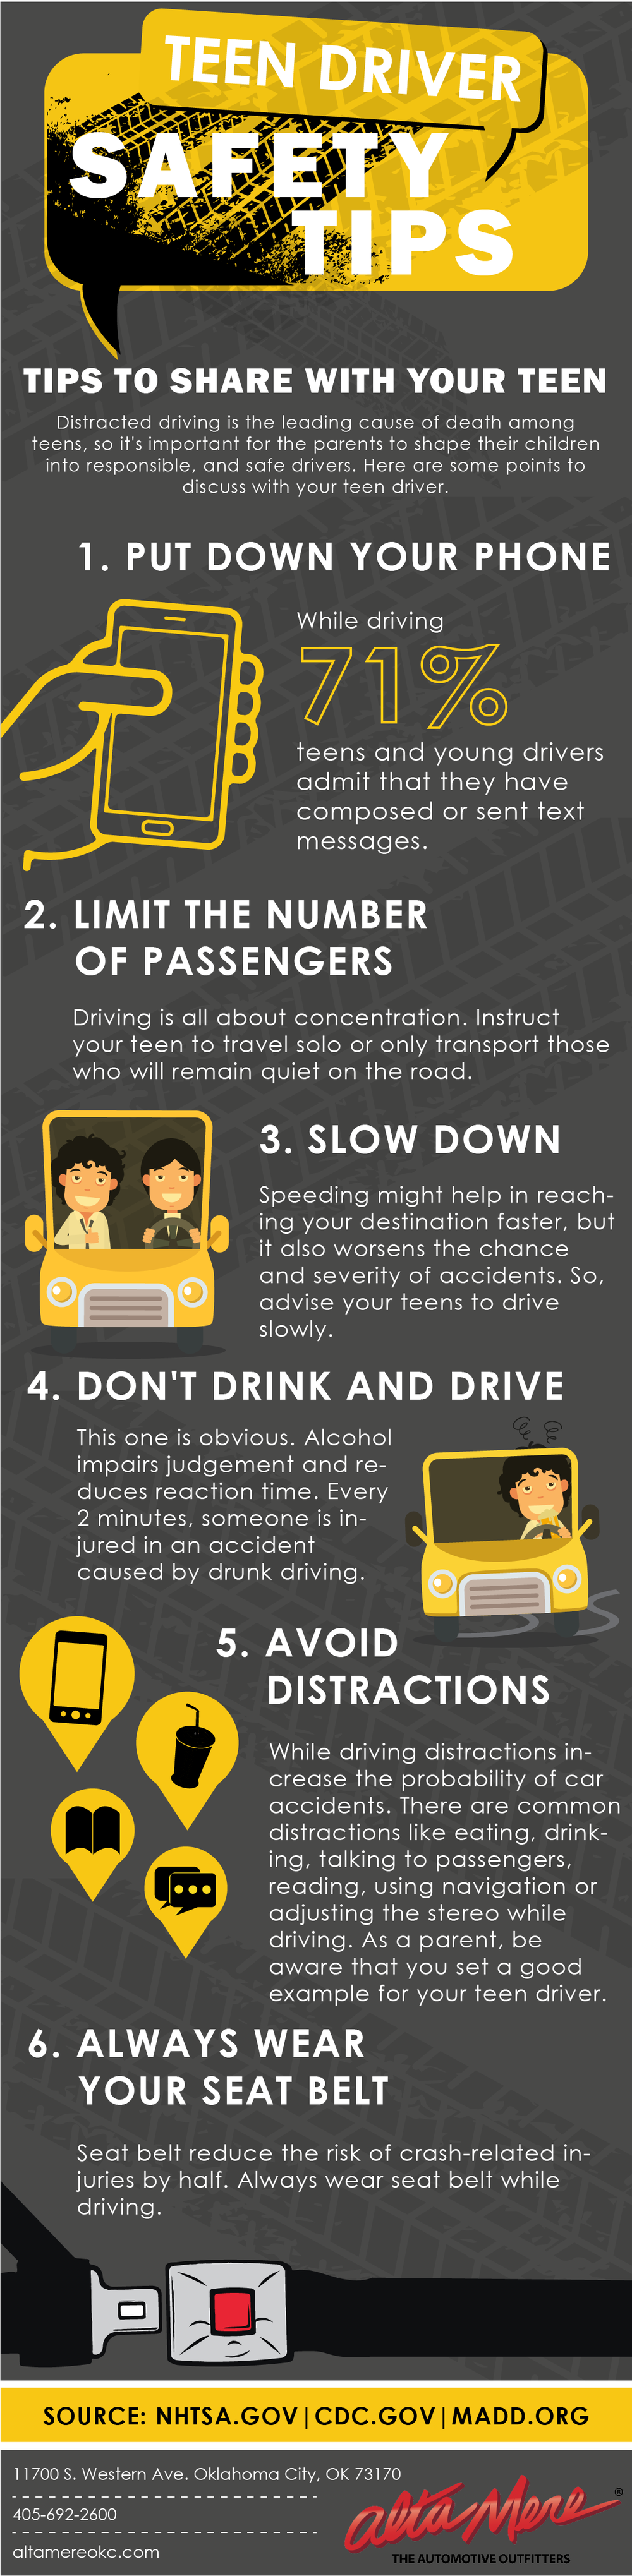 Top 6 Safety Tips For Teenage Drivers